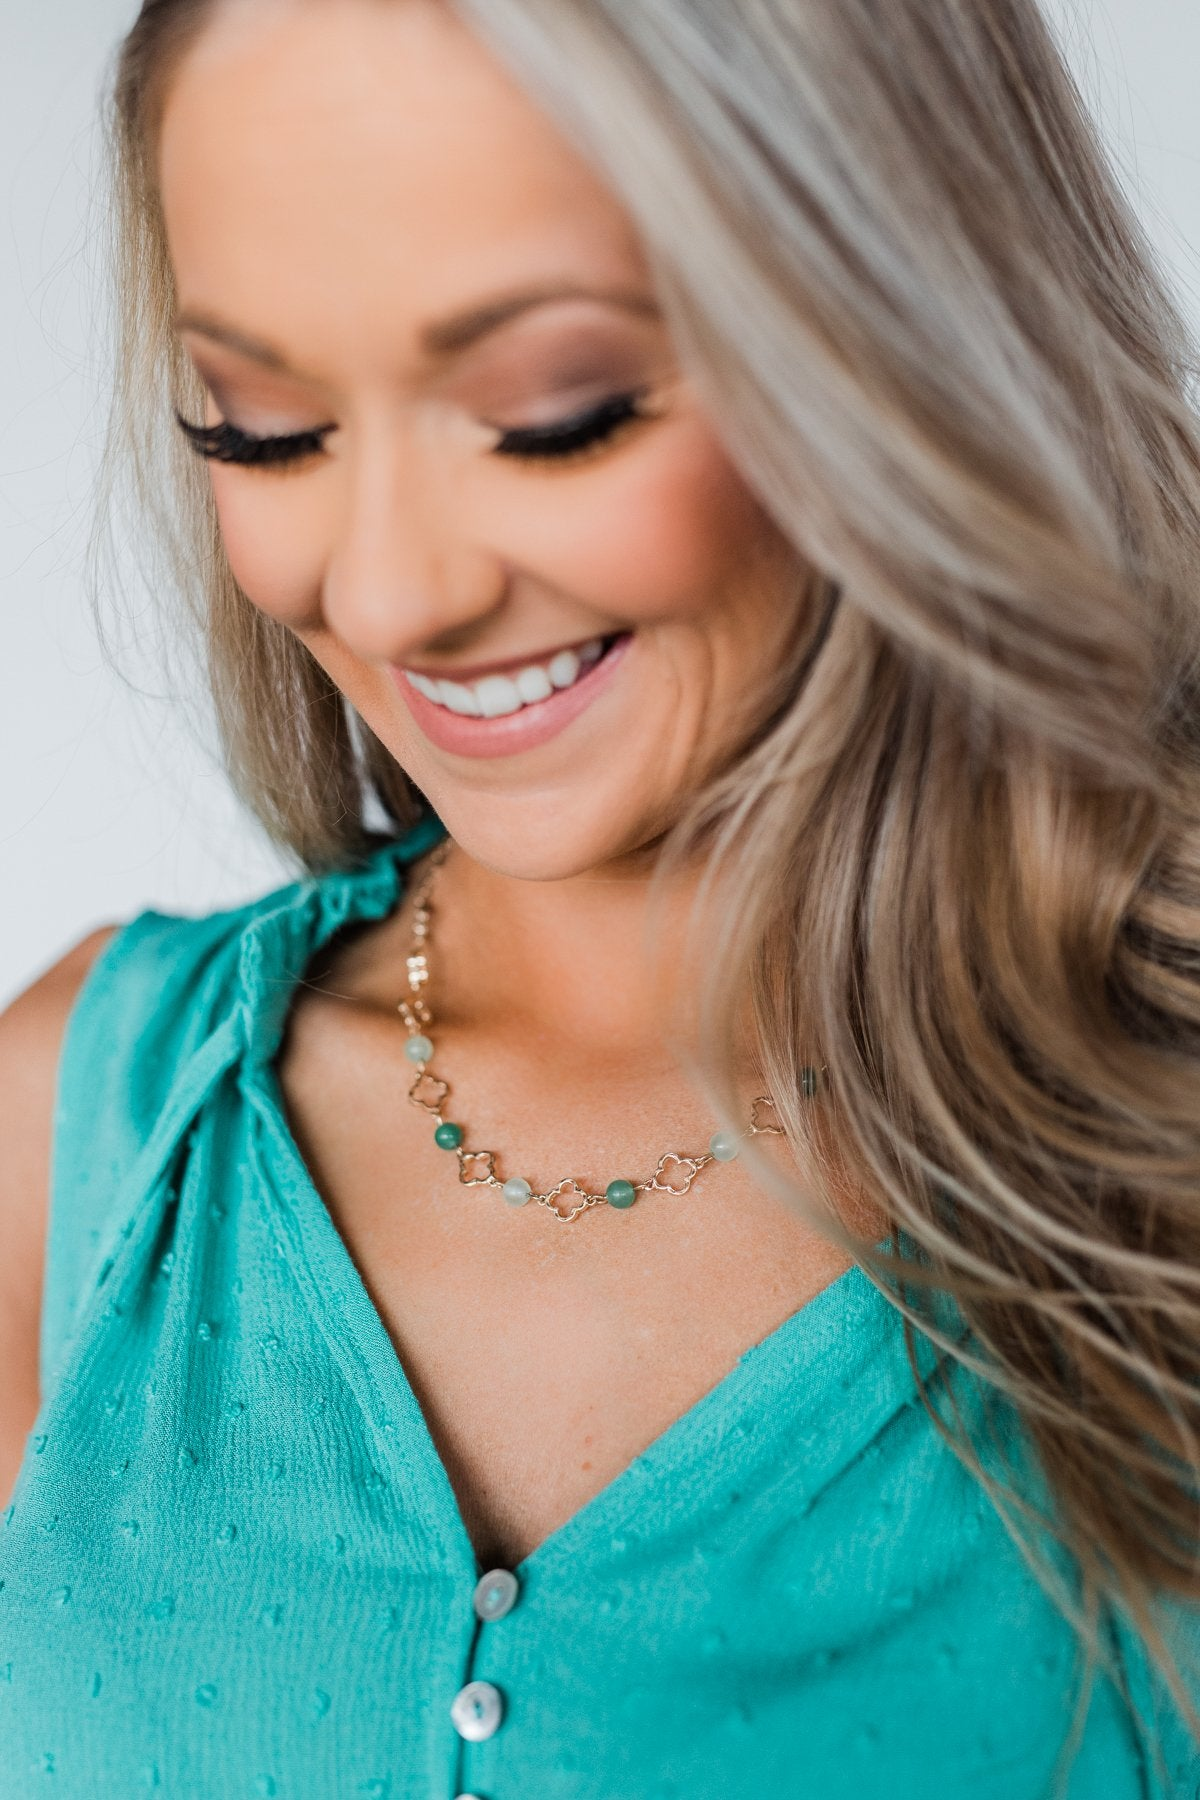 Clover Chain Necklace- Shades of Green